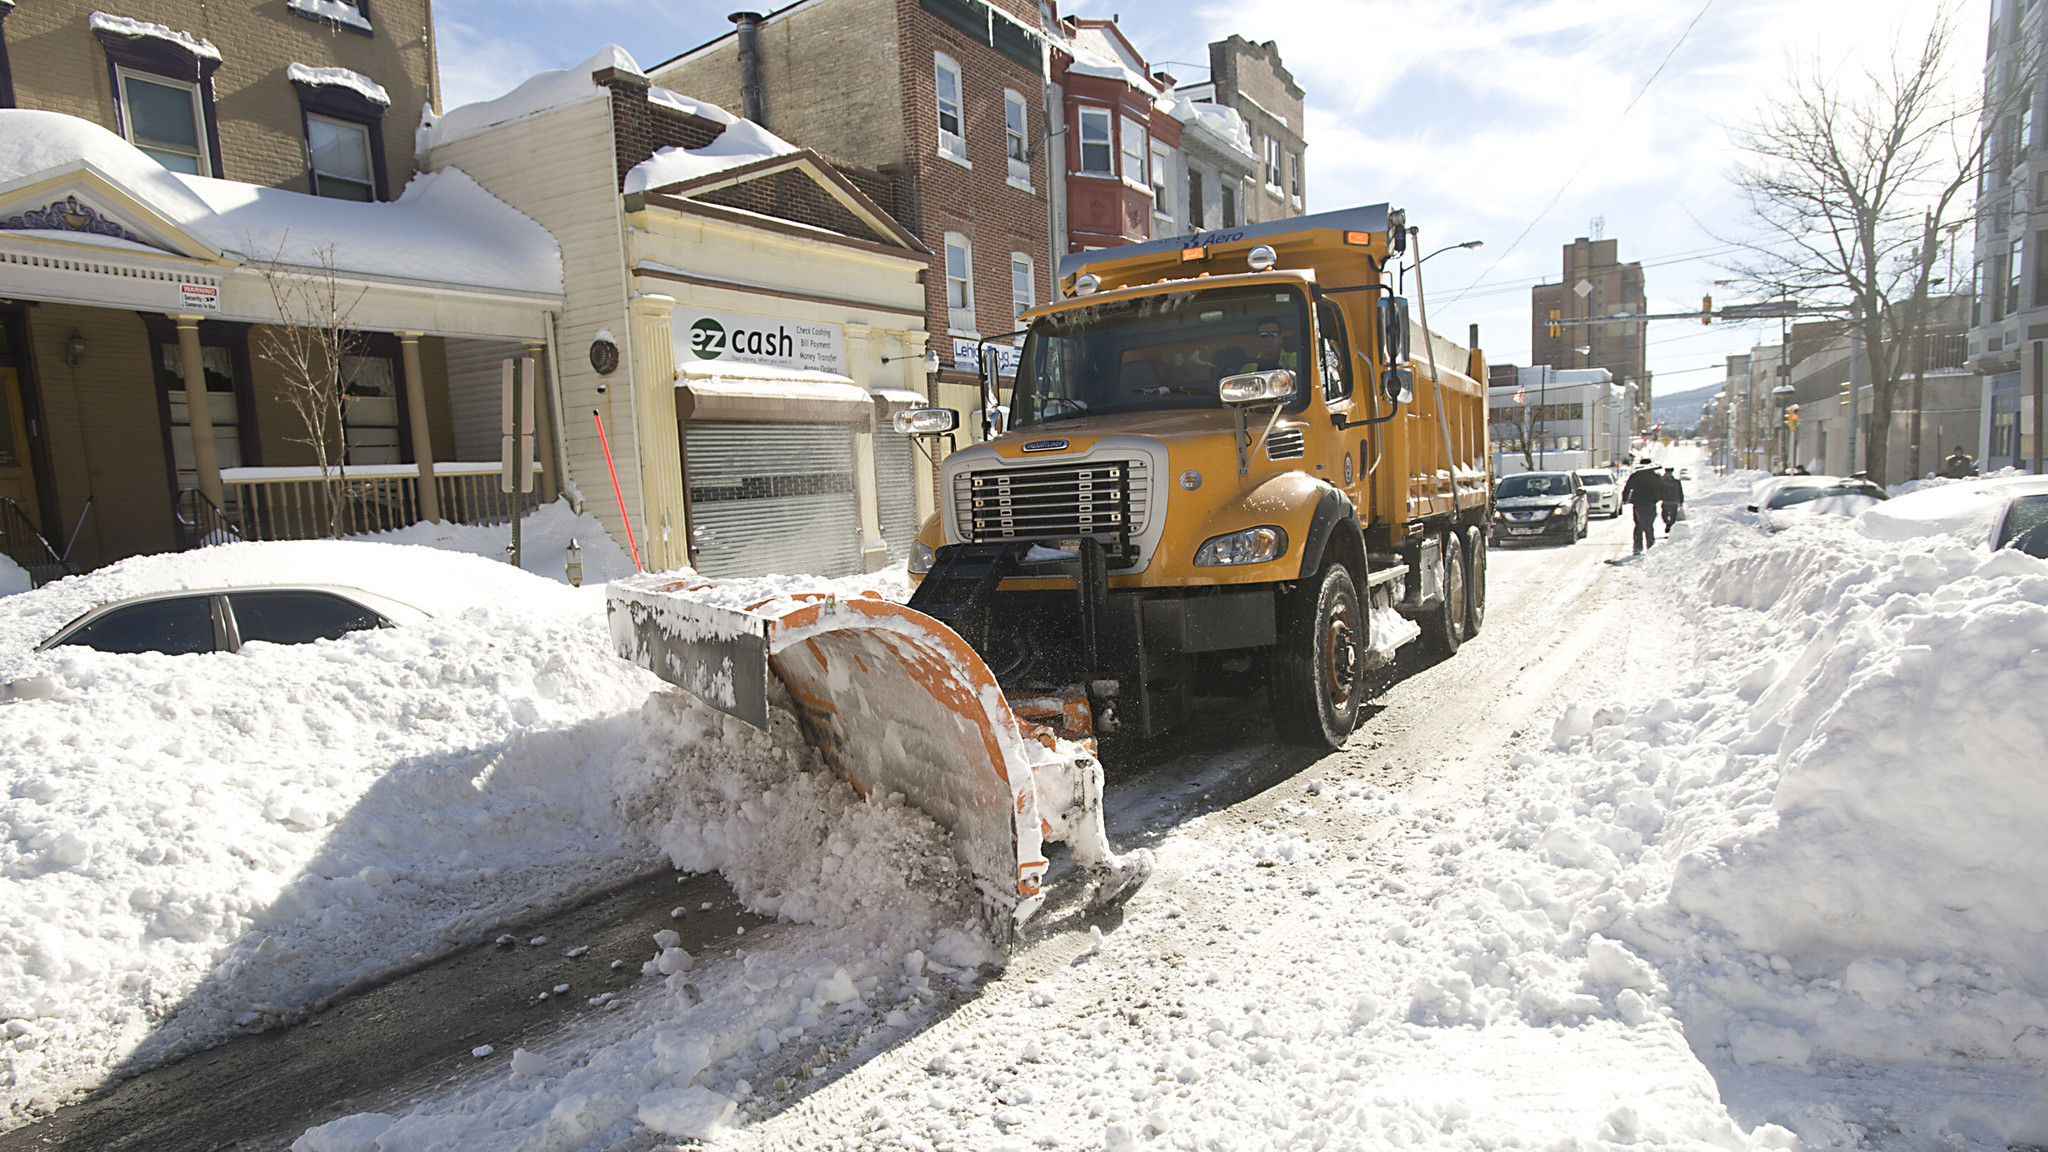 Plowing in the alley